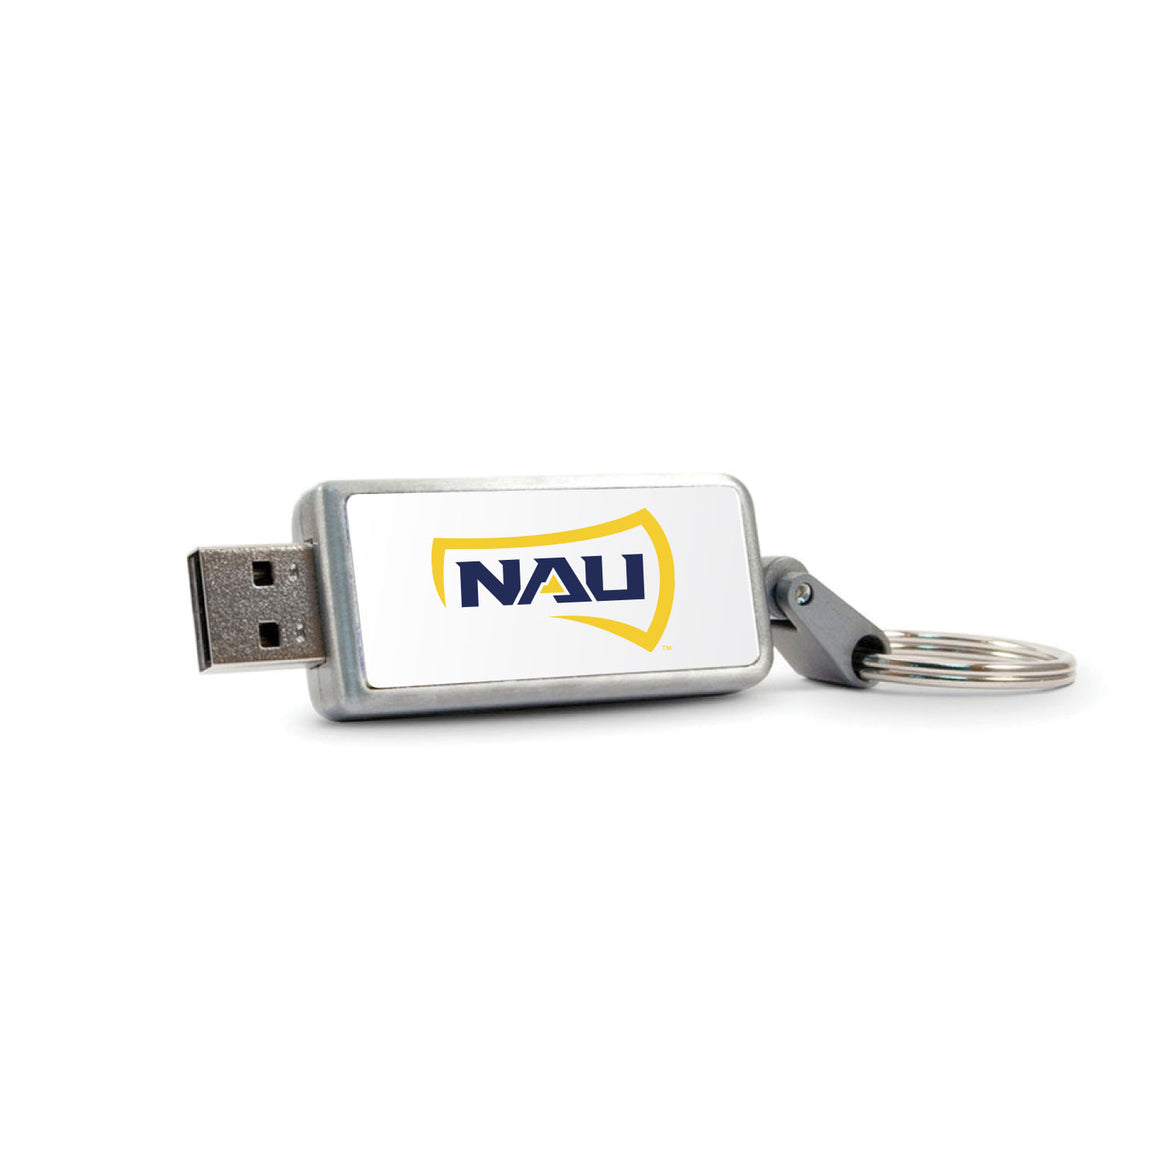 OTM Essentials Keychain USB Flash Drive Northeastern University